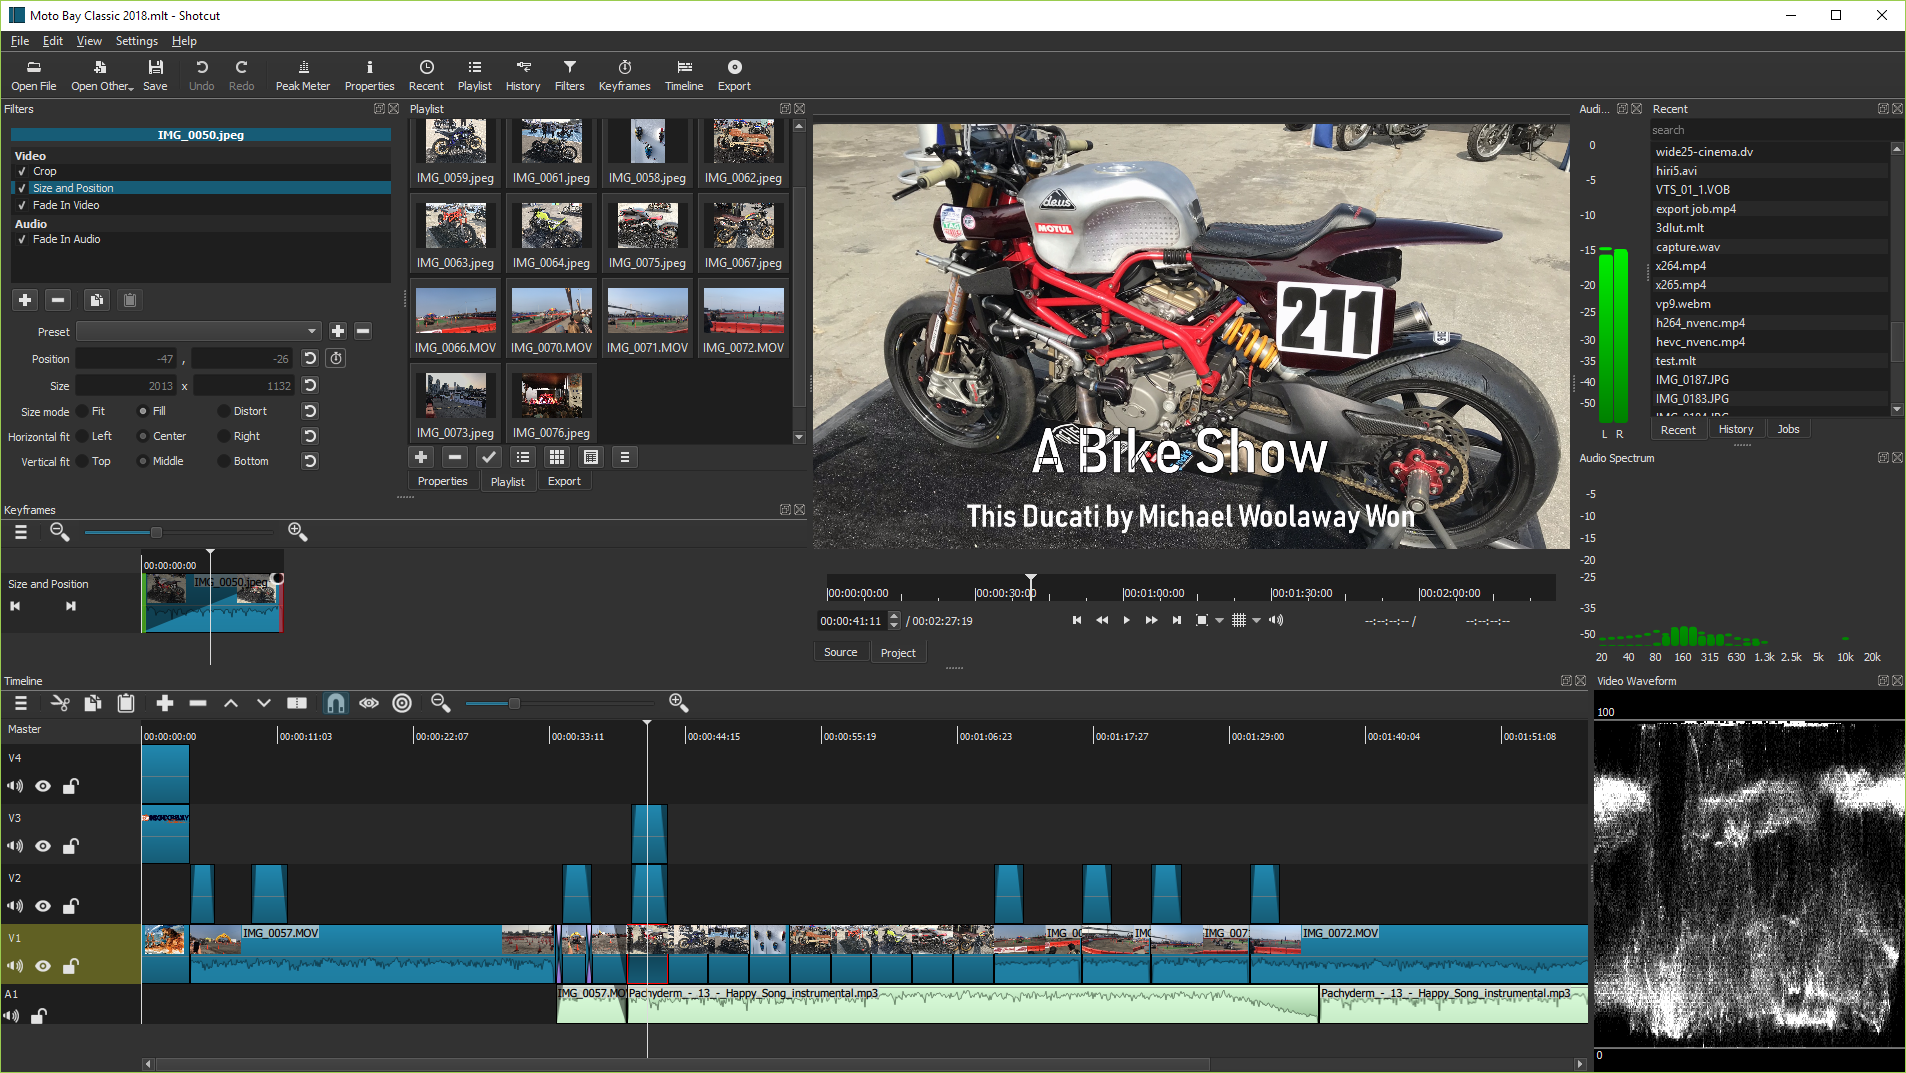 Download Multifunctional and Free Video Editing Software - Shotcut